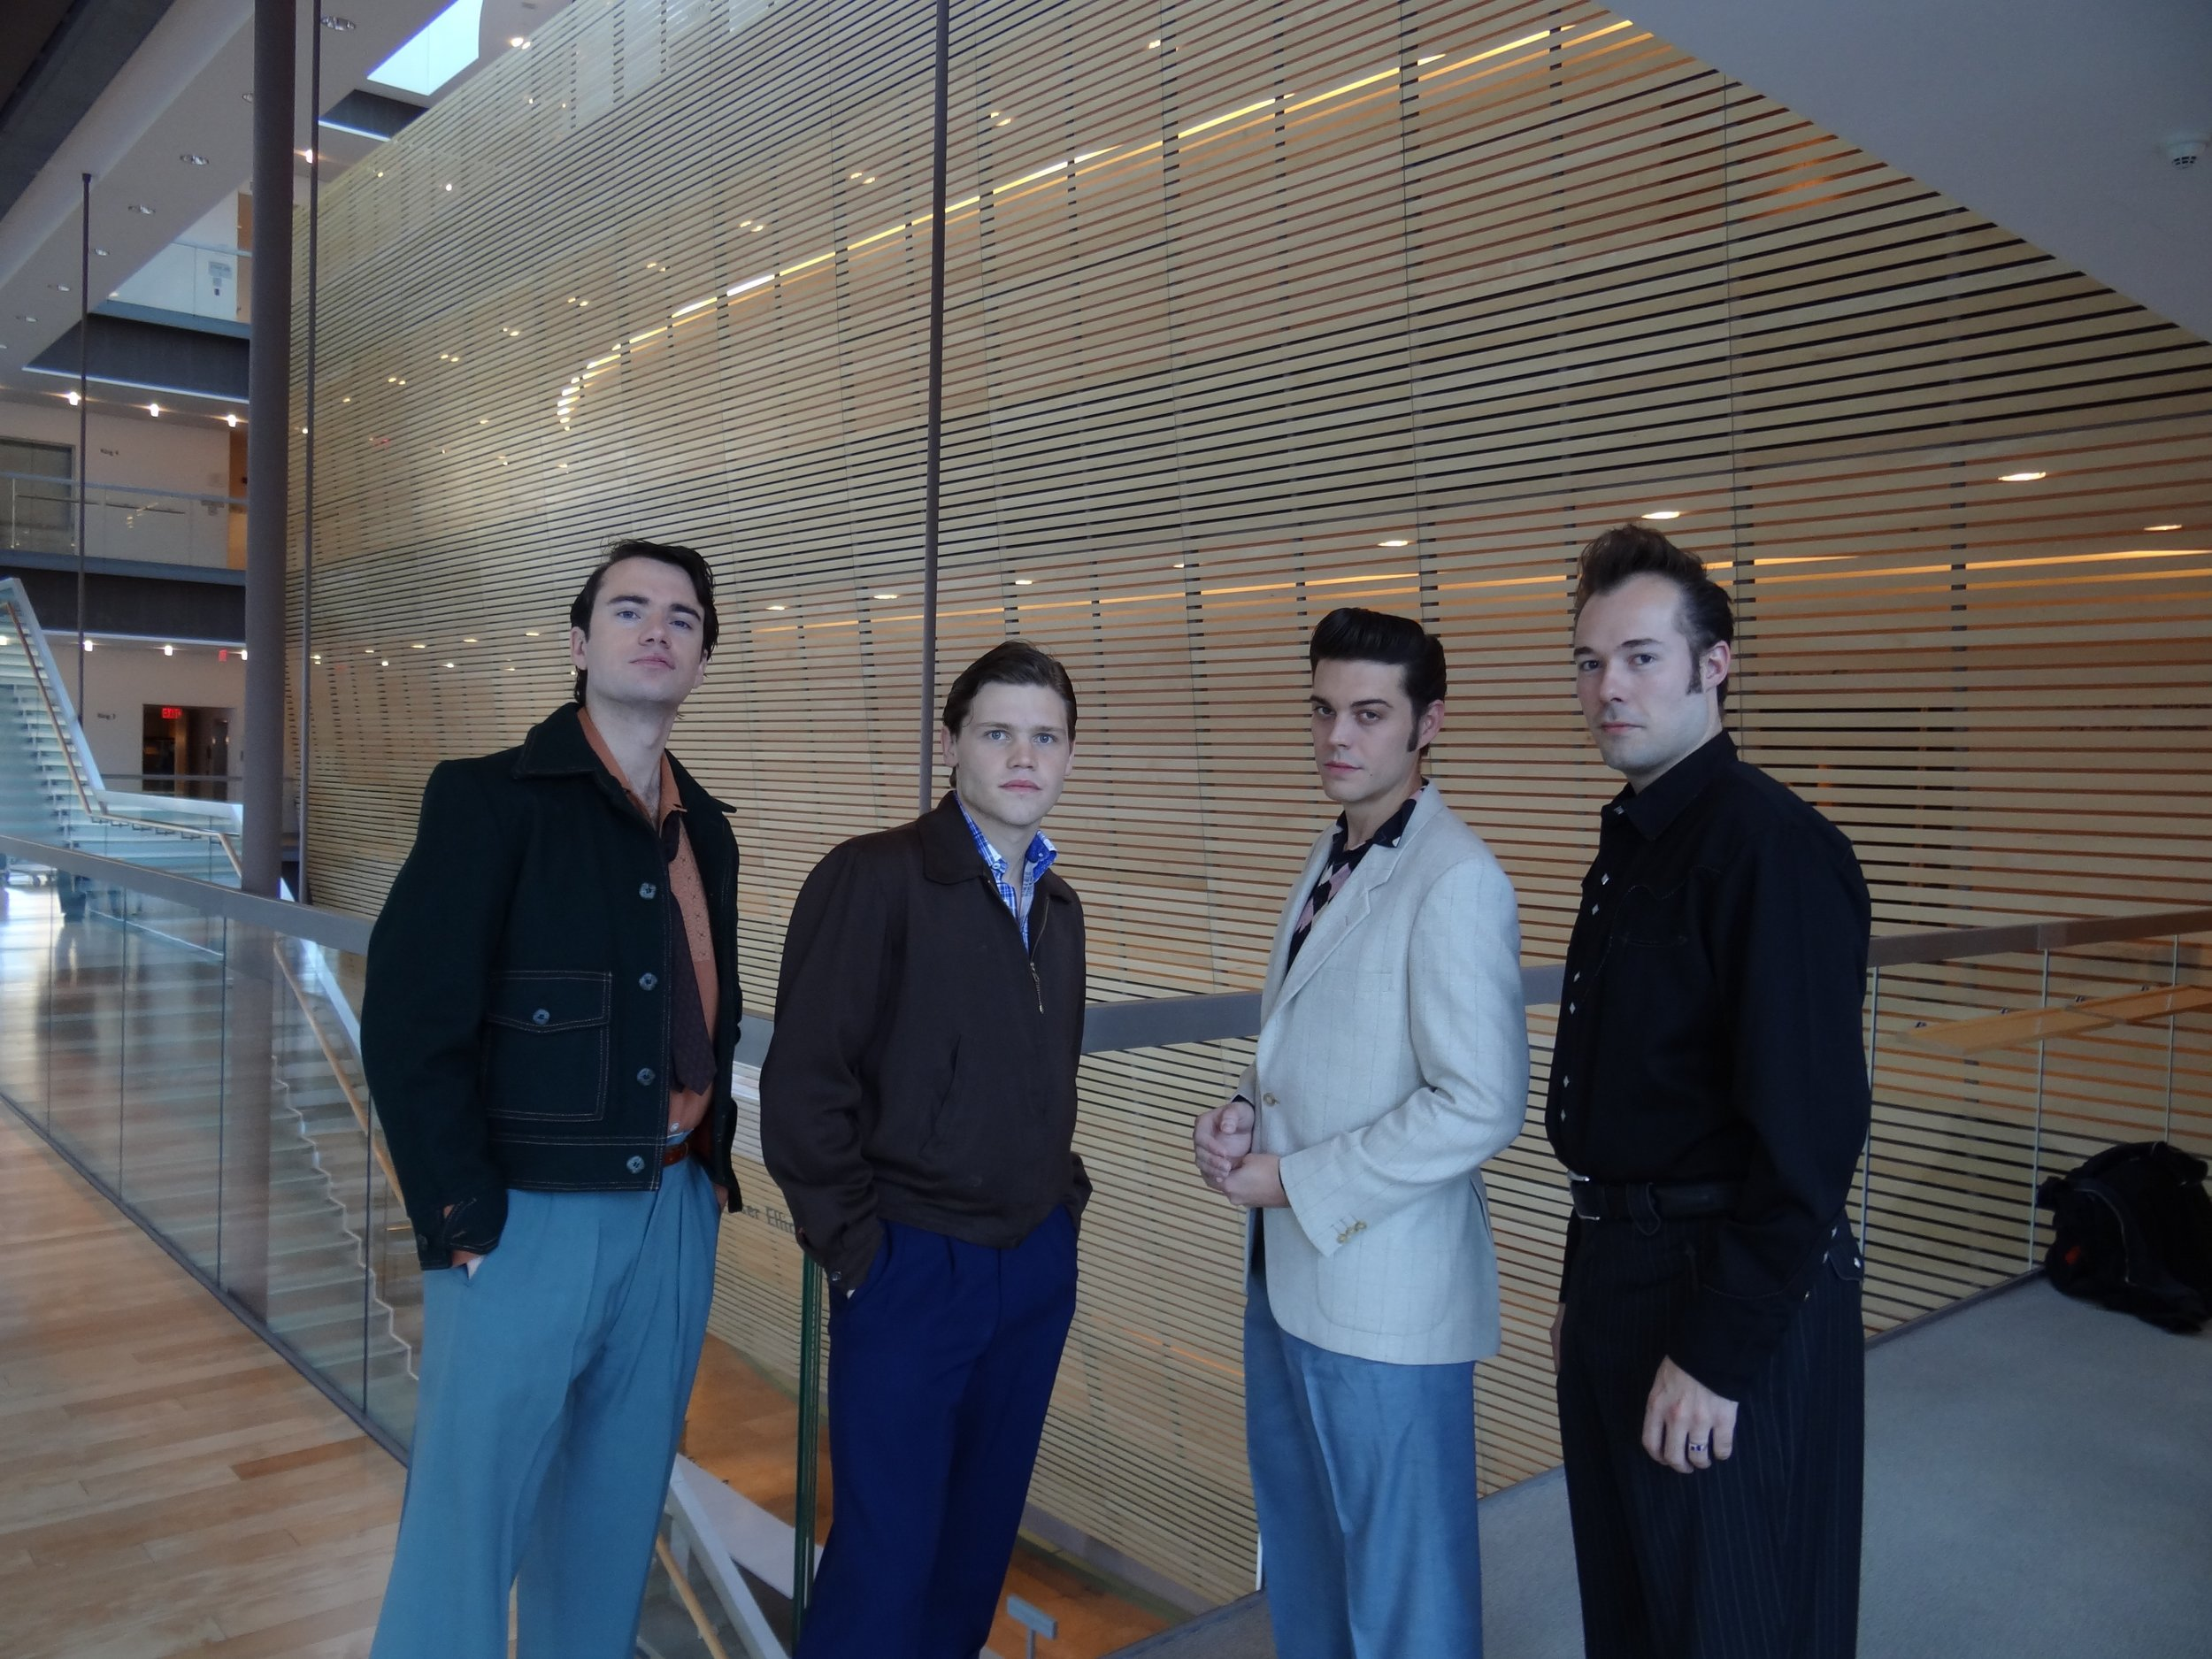 First National Tour Cast Before Their First Promotional Appearence - Toronto - 2011